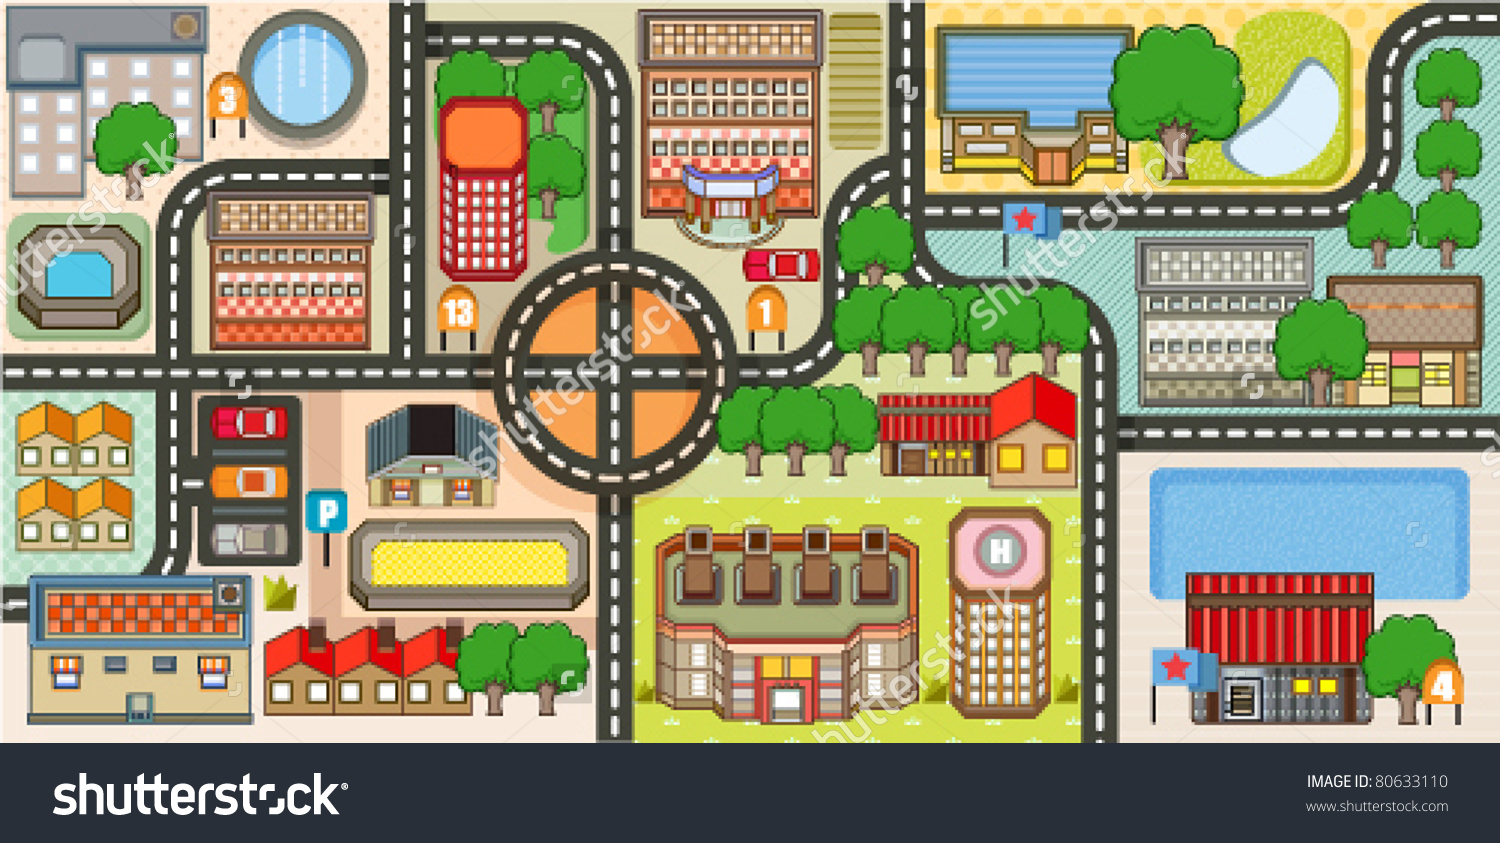 City map clipart 3 » Clipart Station.